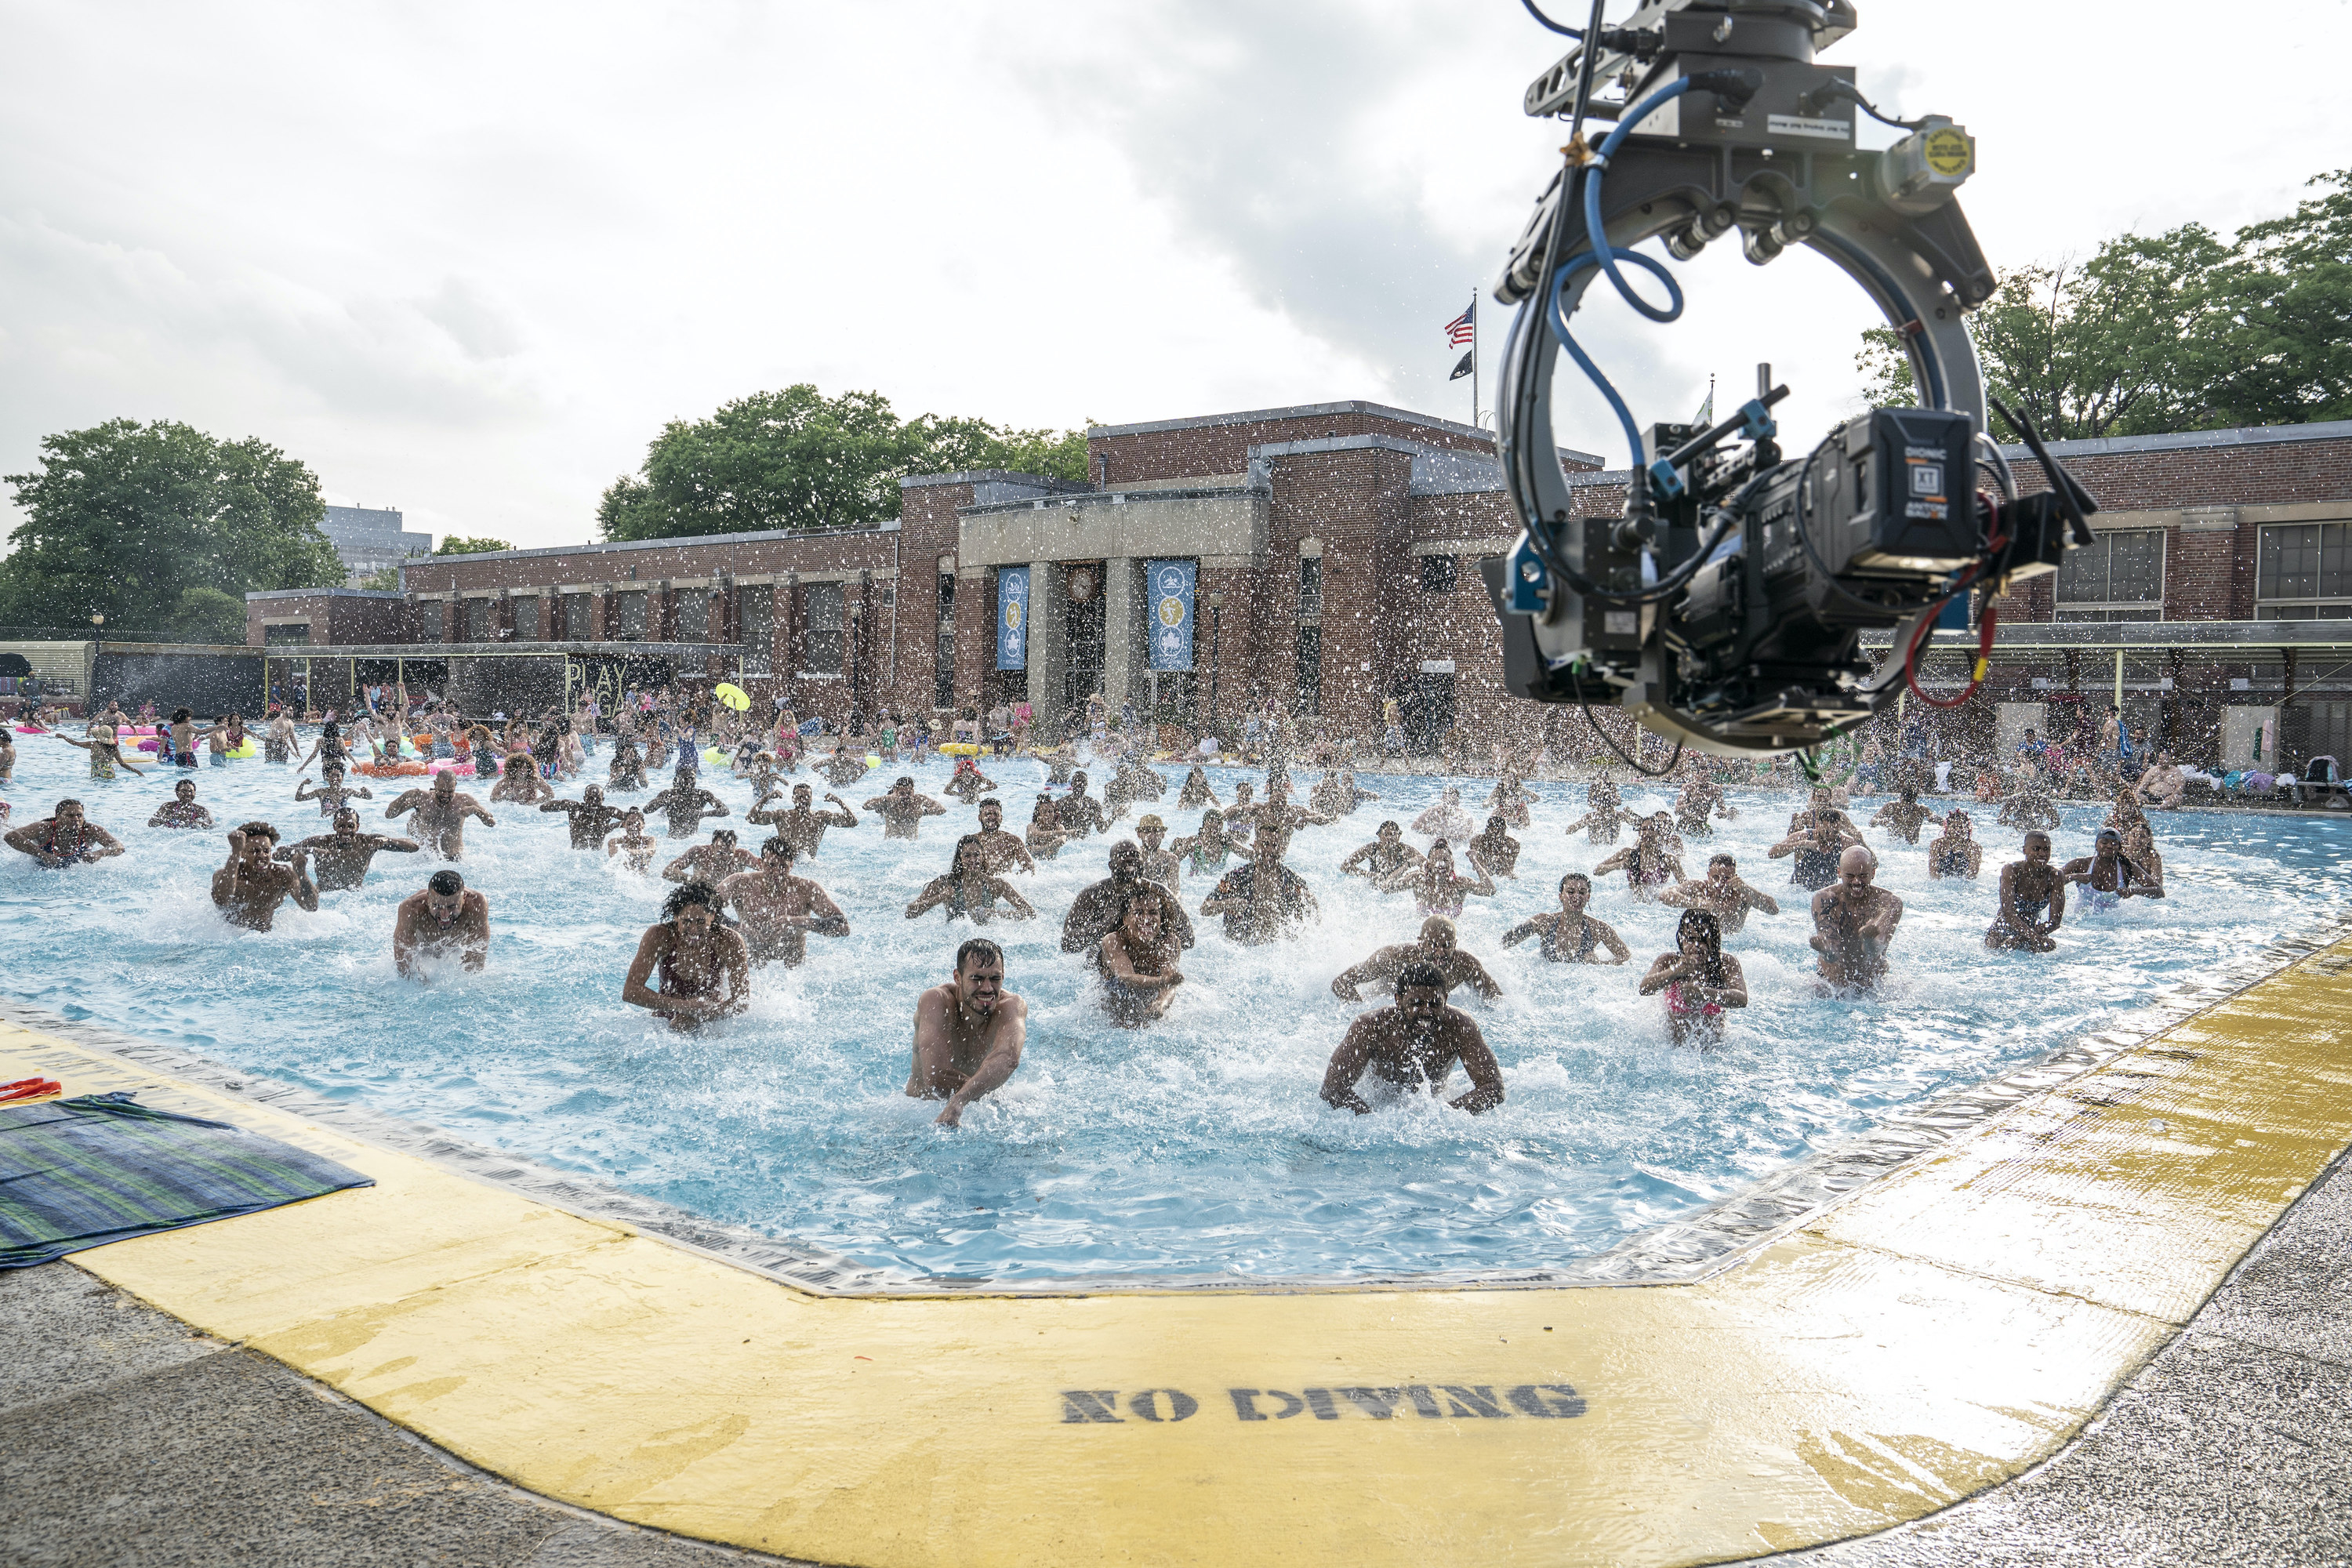 A big camera rig shooting the people dancing in the pool from above